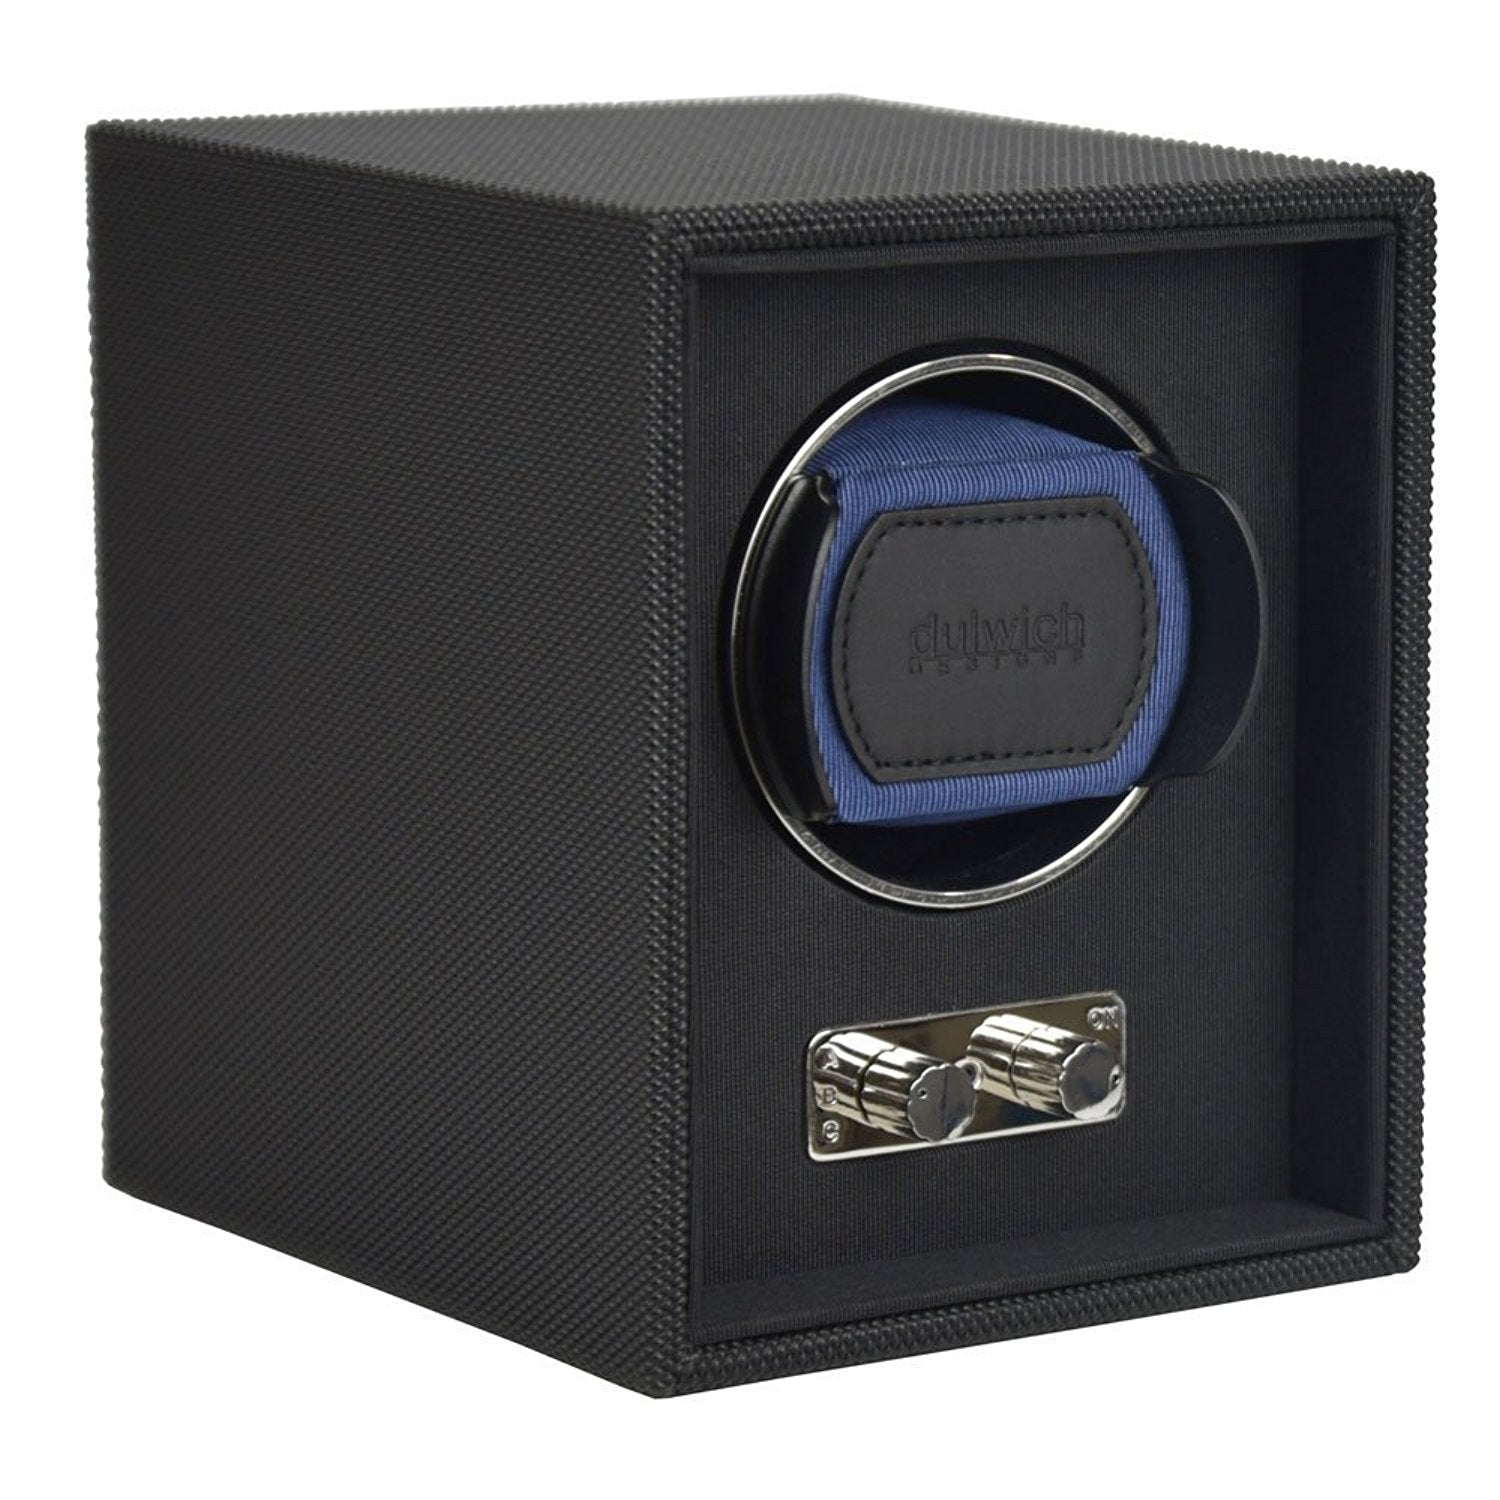 Goodwood Dulwich Navy Blue Single Watch rotator Watch Winder